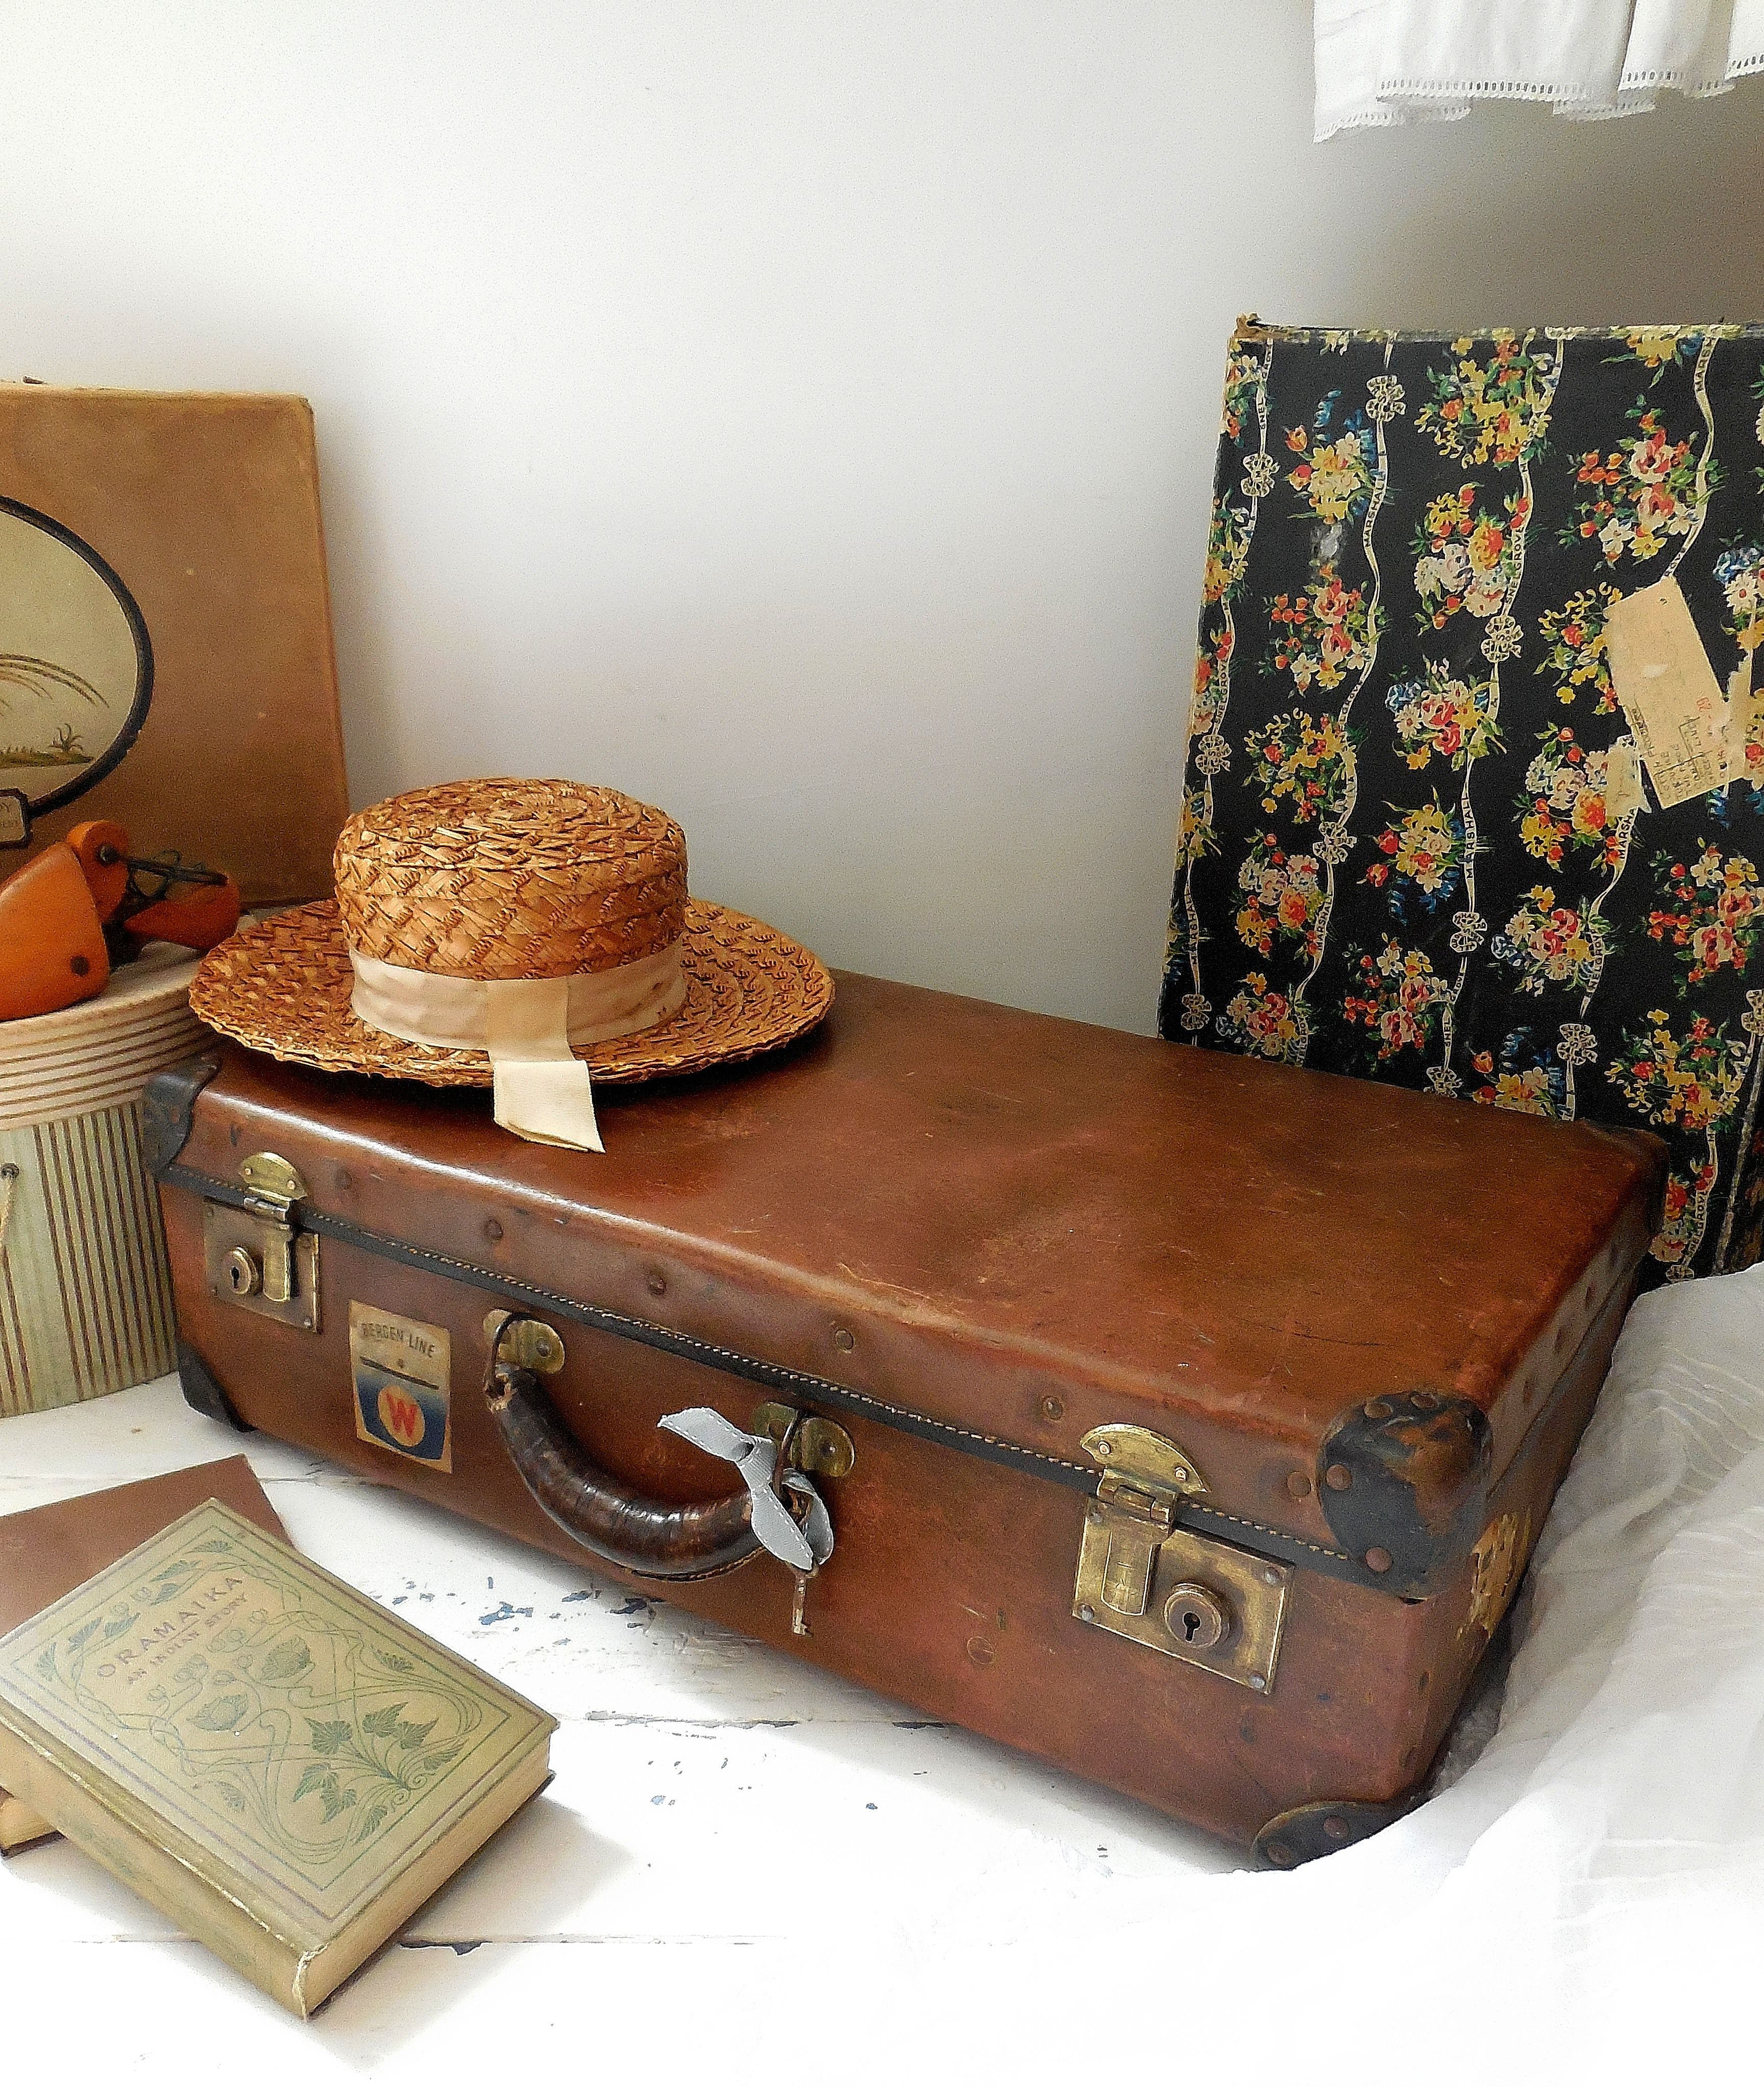 Superb Vintage Suitcase With Key Snapped Up Before I Could Get It To The Website